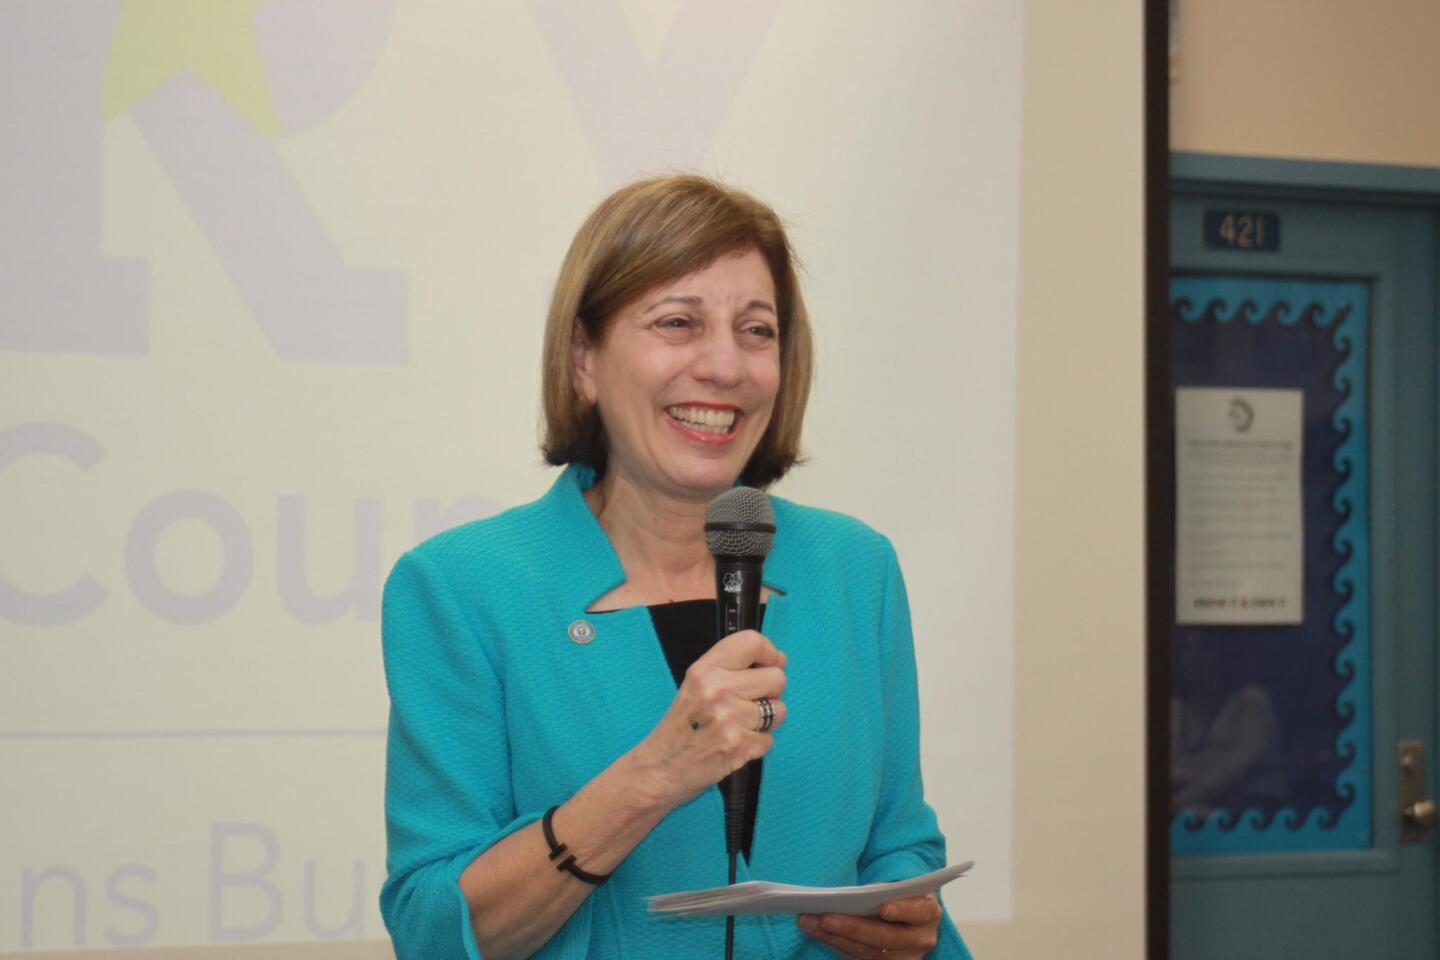 Newly elected District 1 San Diego City Council member Barbara Bry